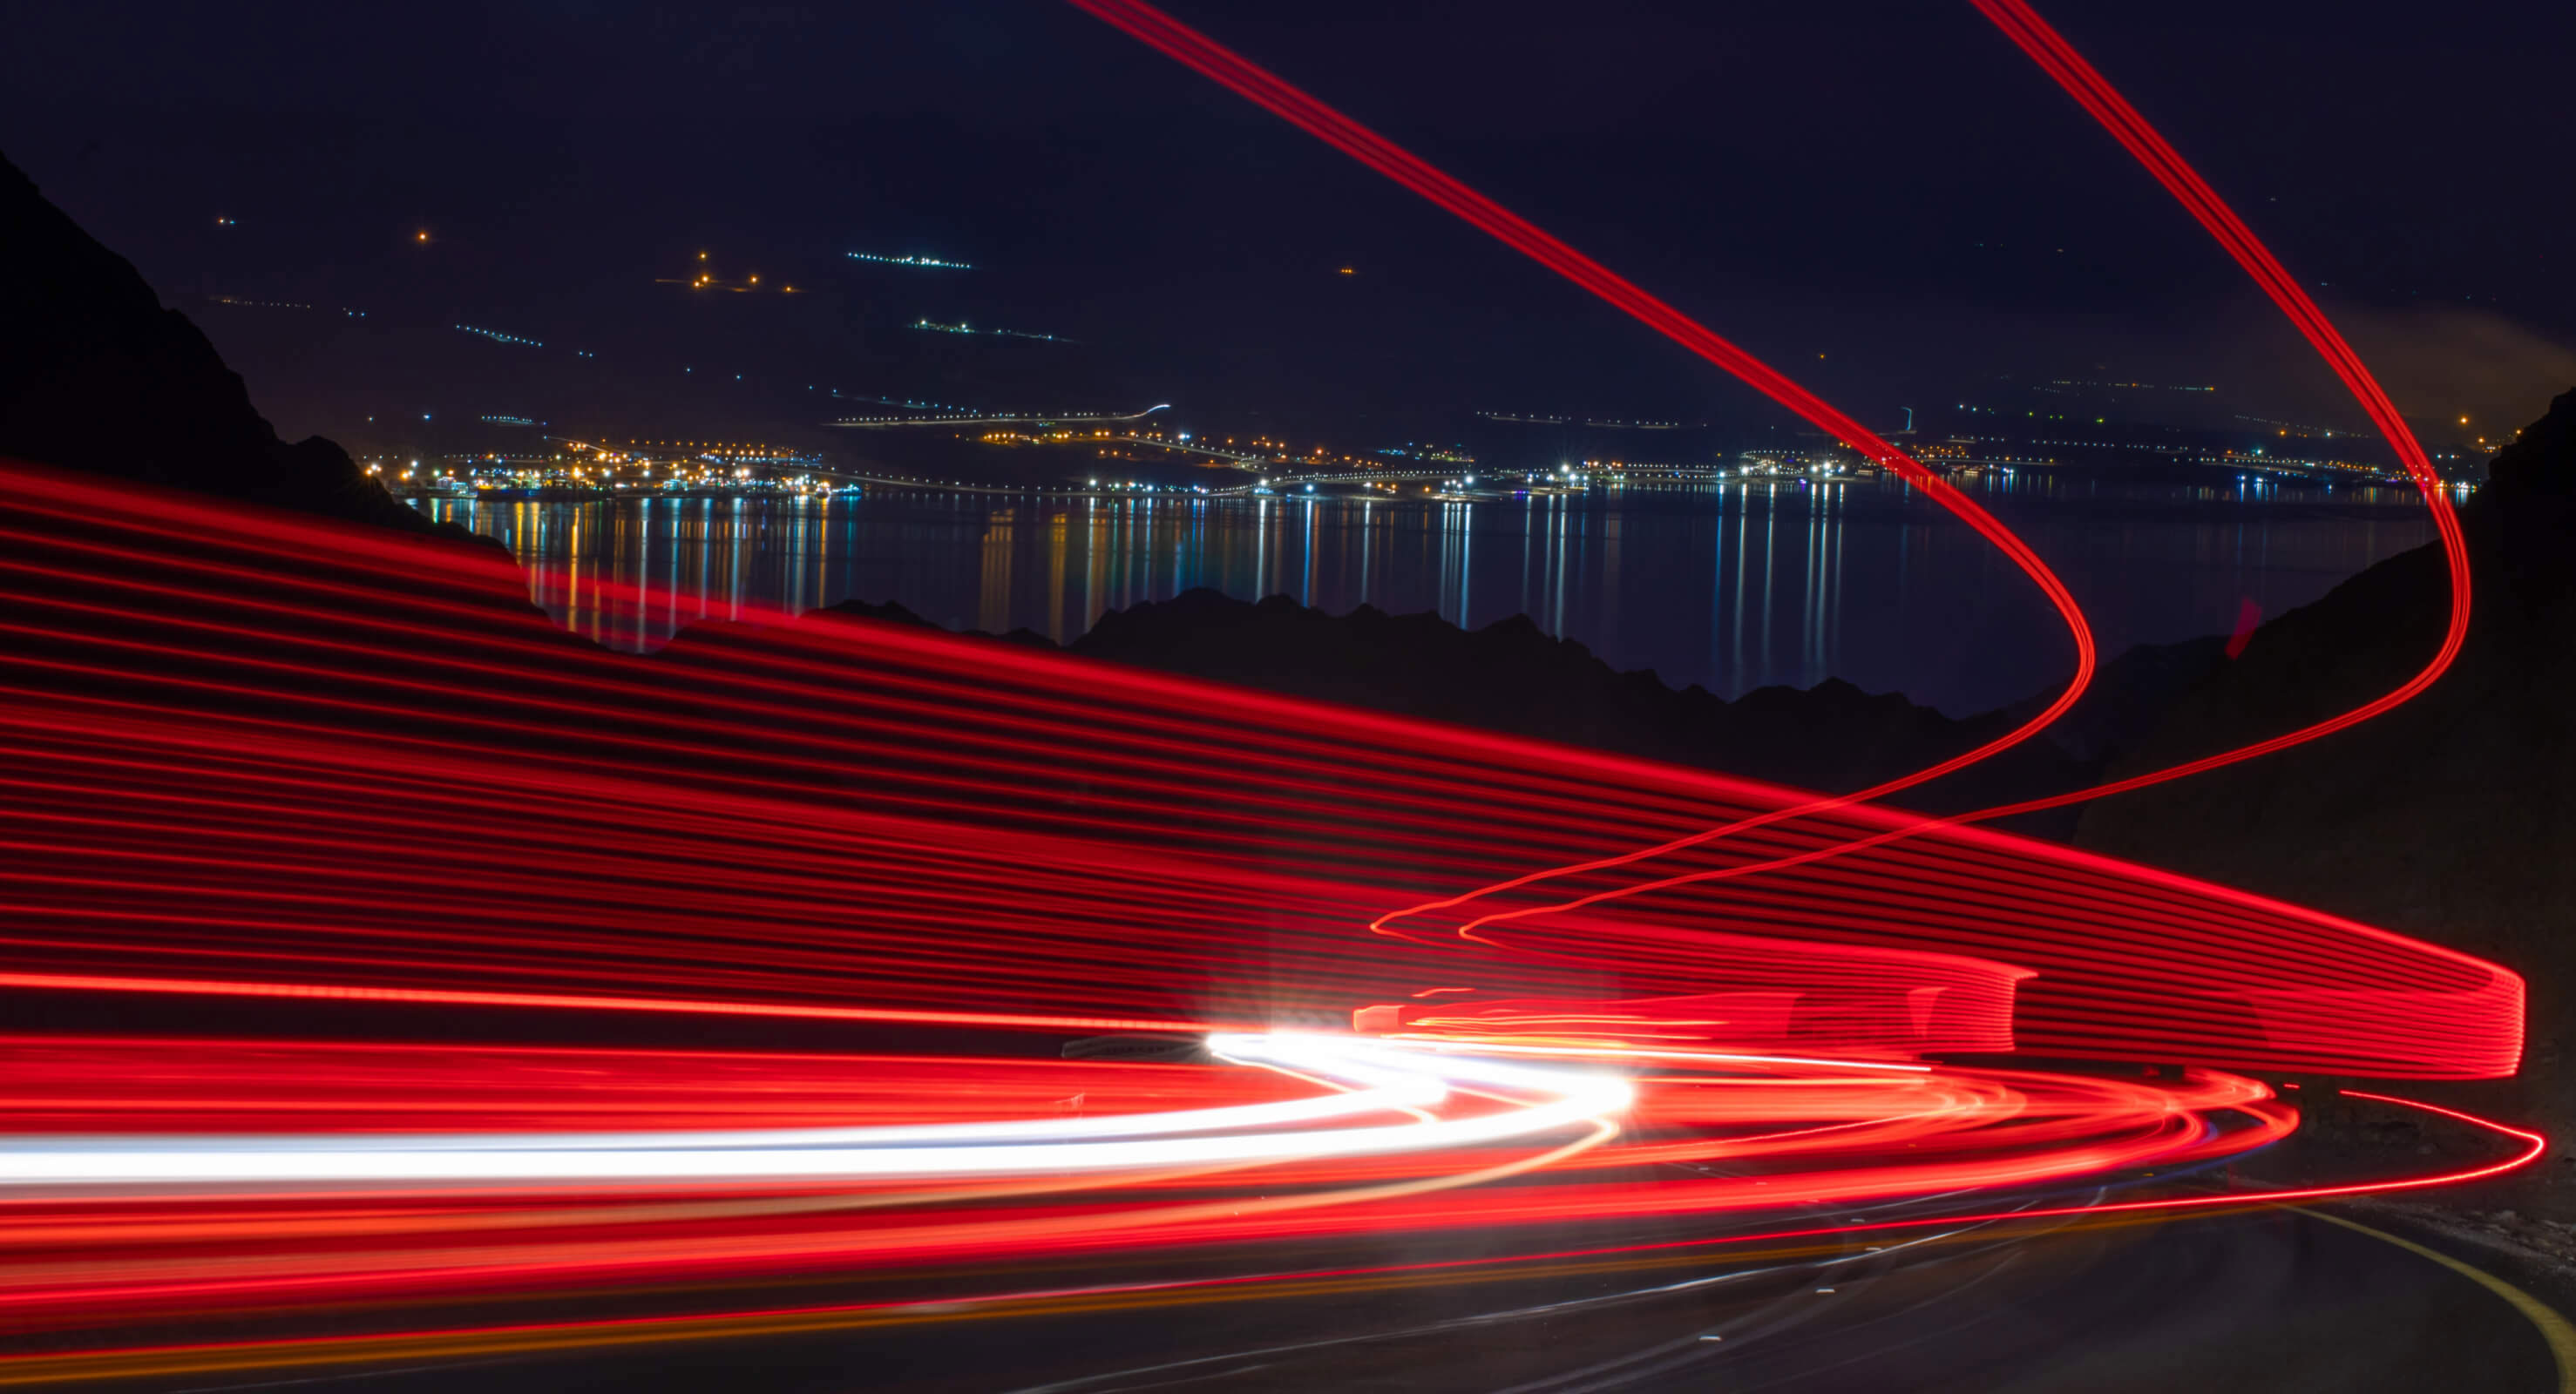 Dynamic red lines over city night landscape